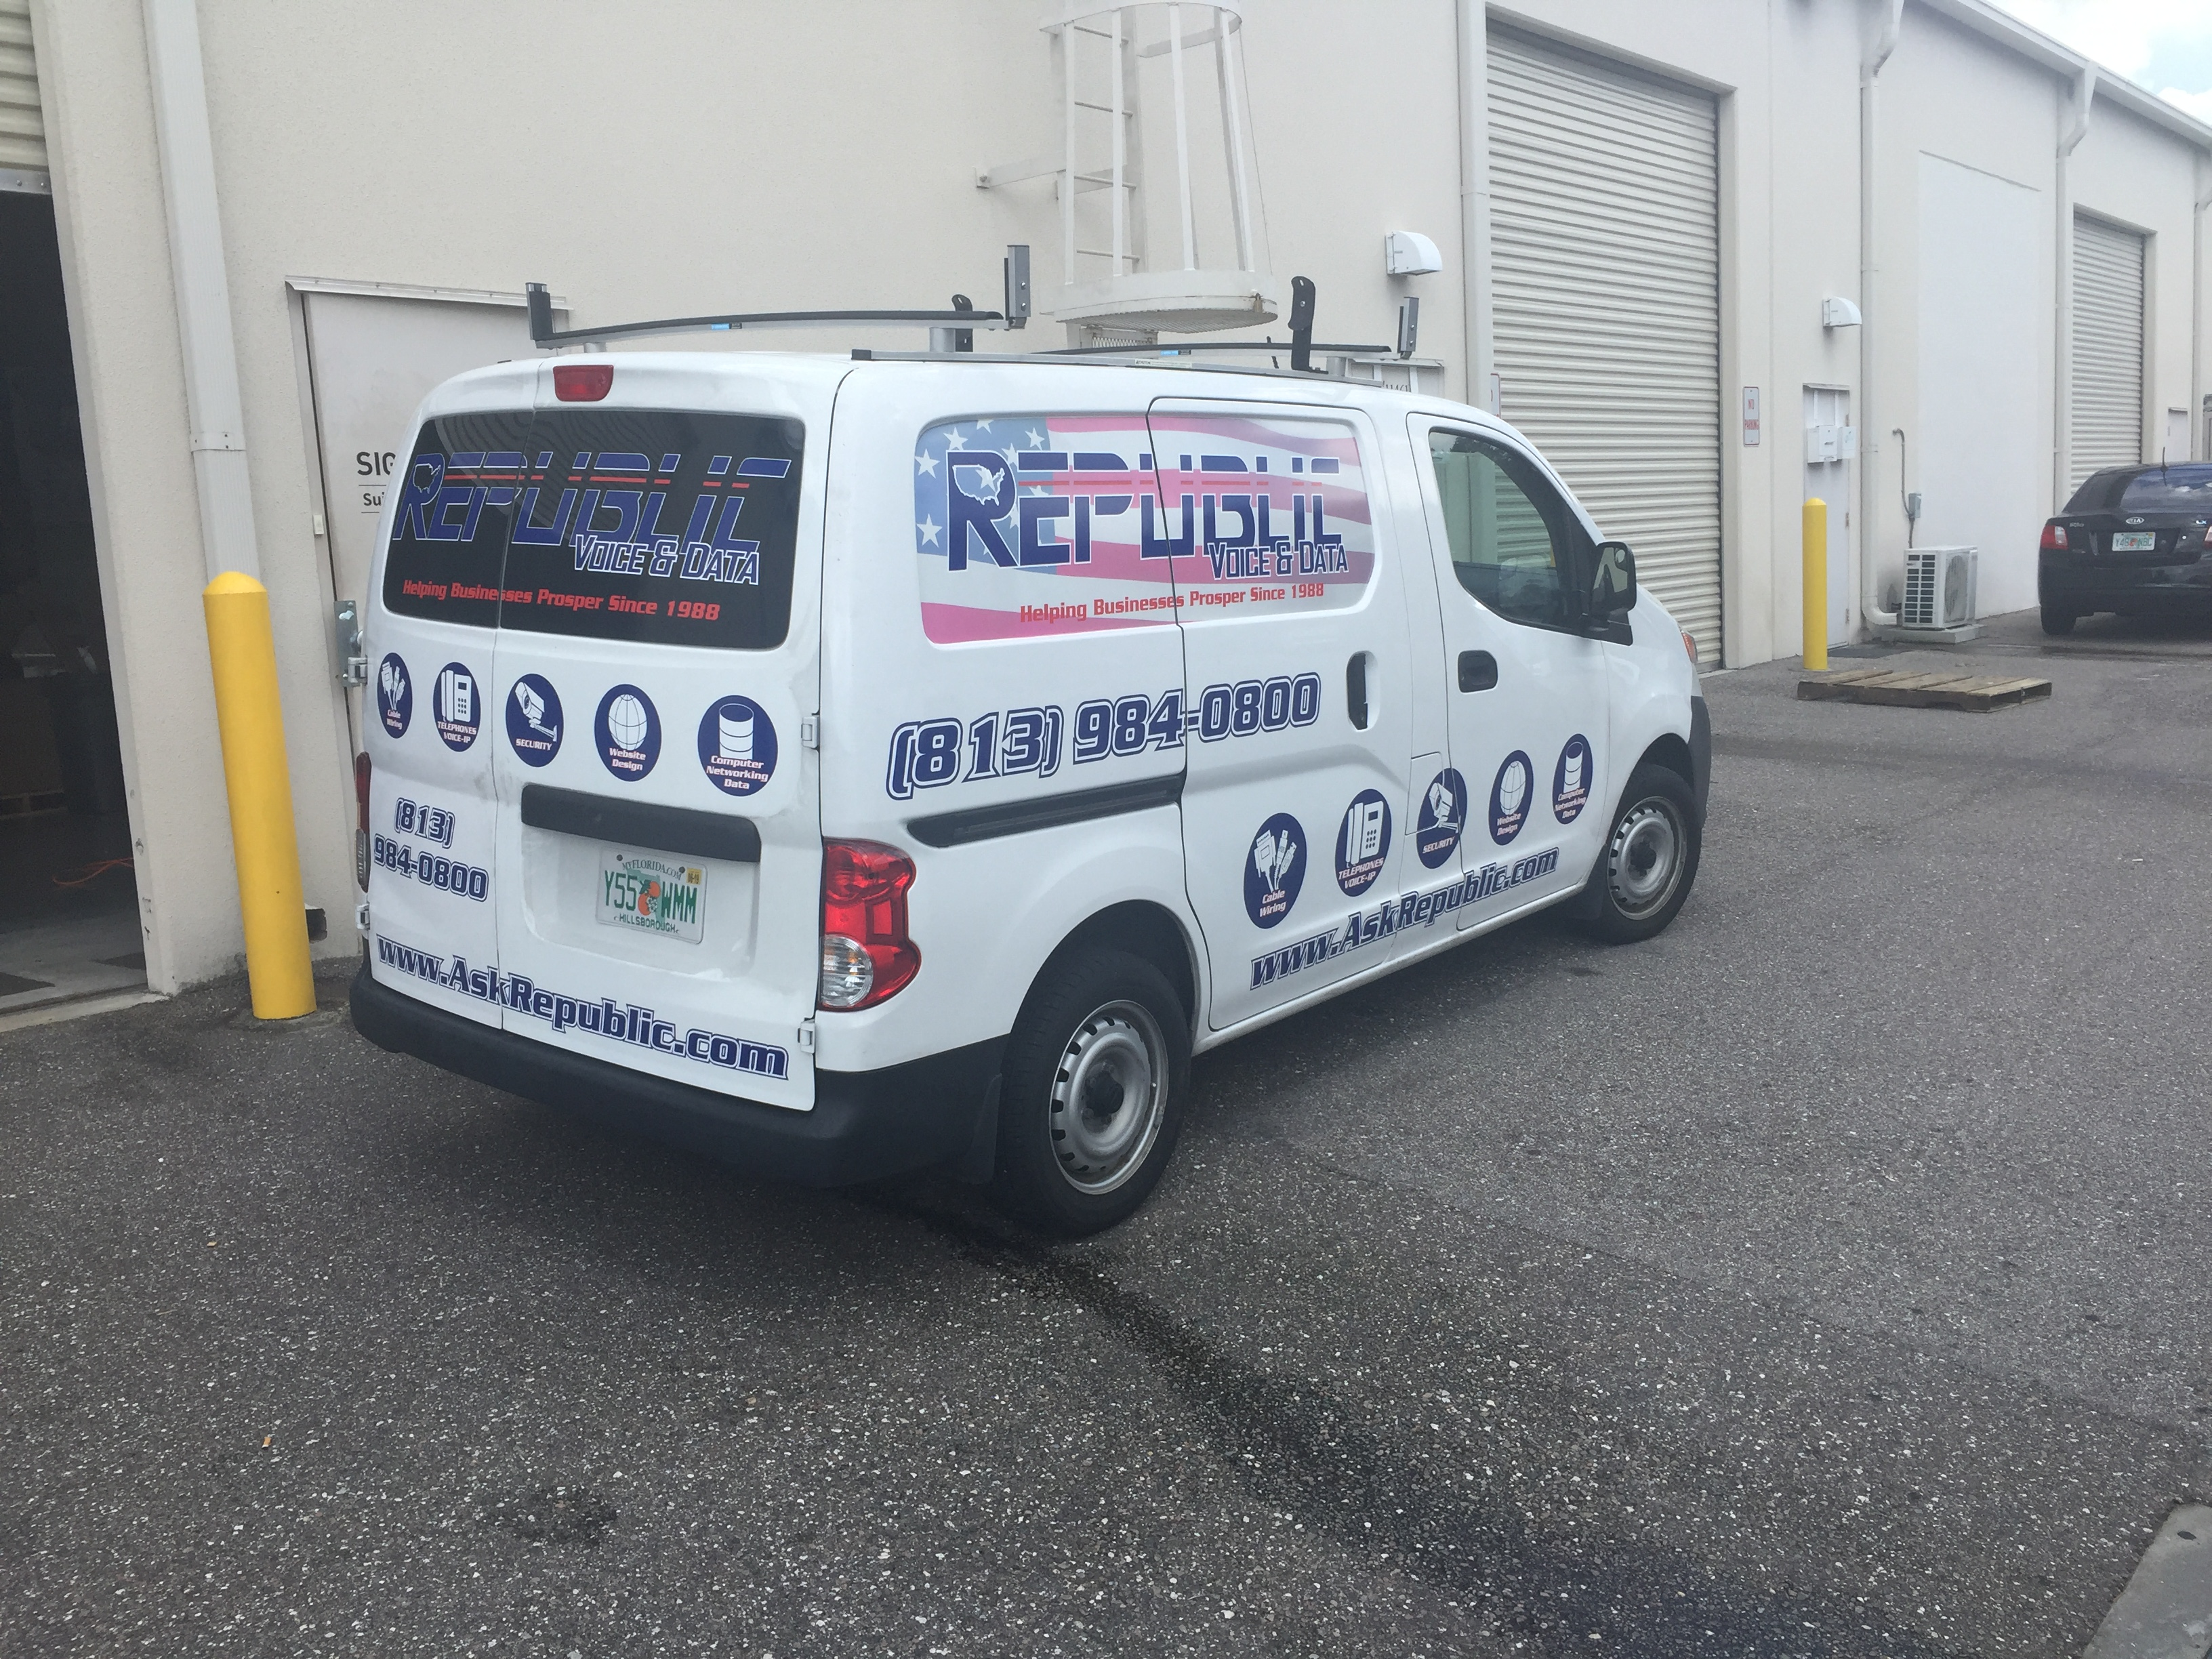 Vehicle Graphics In Tampa Fl Republic Voice And Data